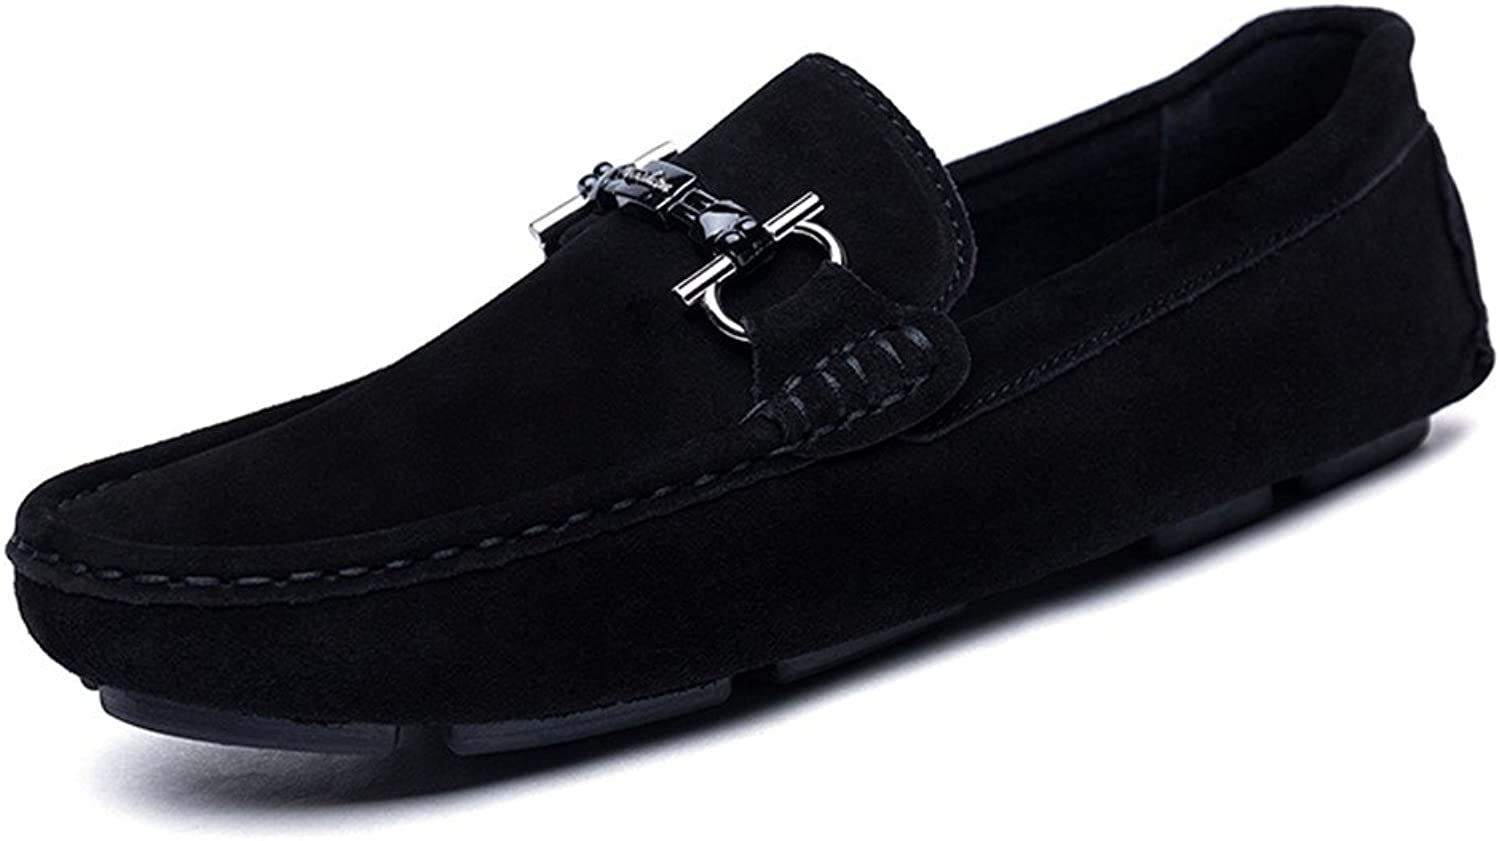 Yoga Pants Men's Driving Loafers Casual Leather Sanding Style and Hollow Breathable AntiSlip Soft Dress shoes Women